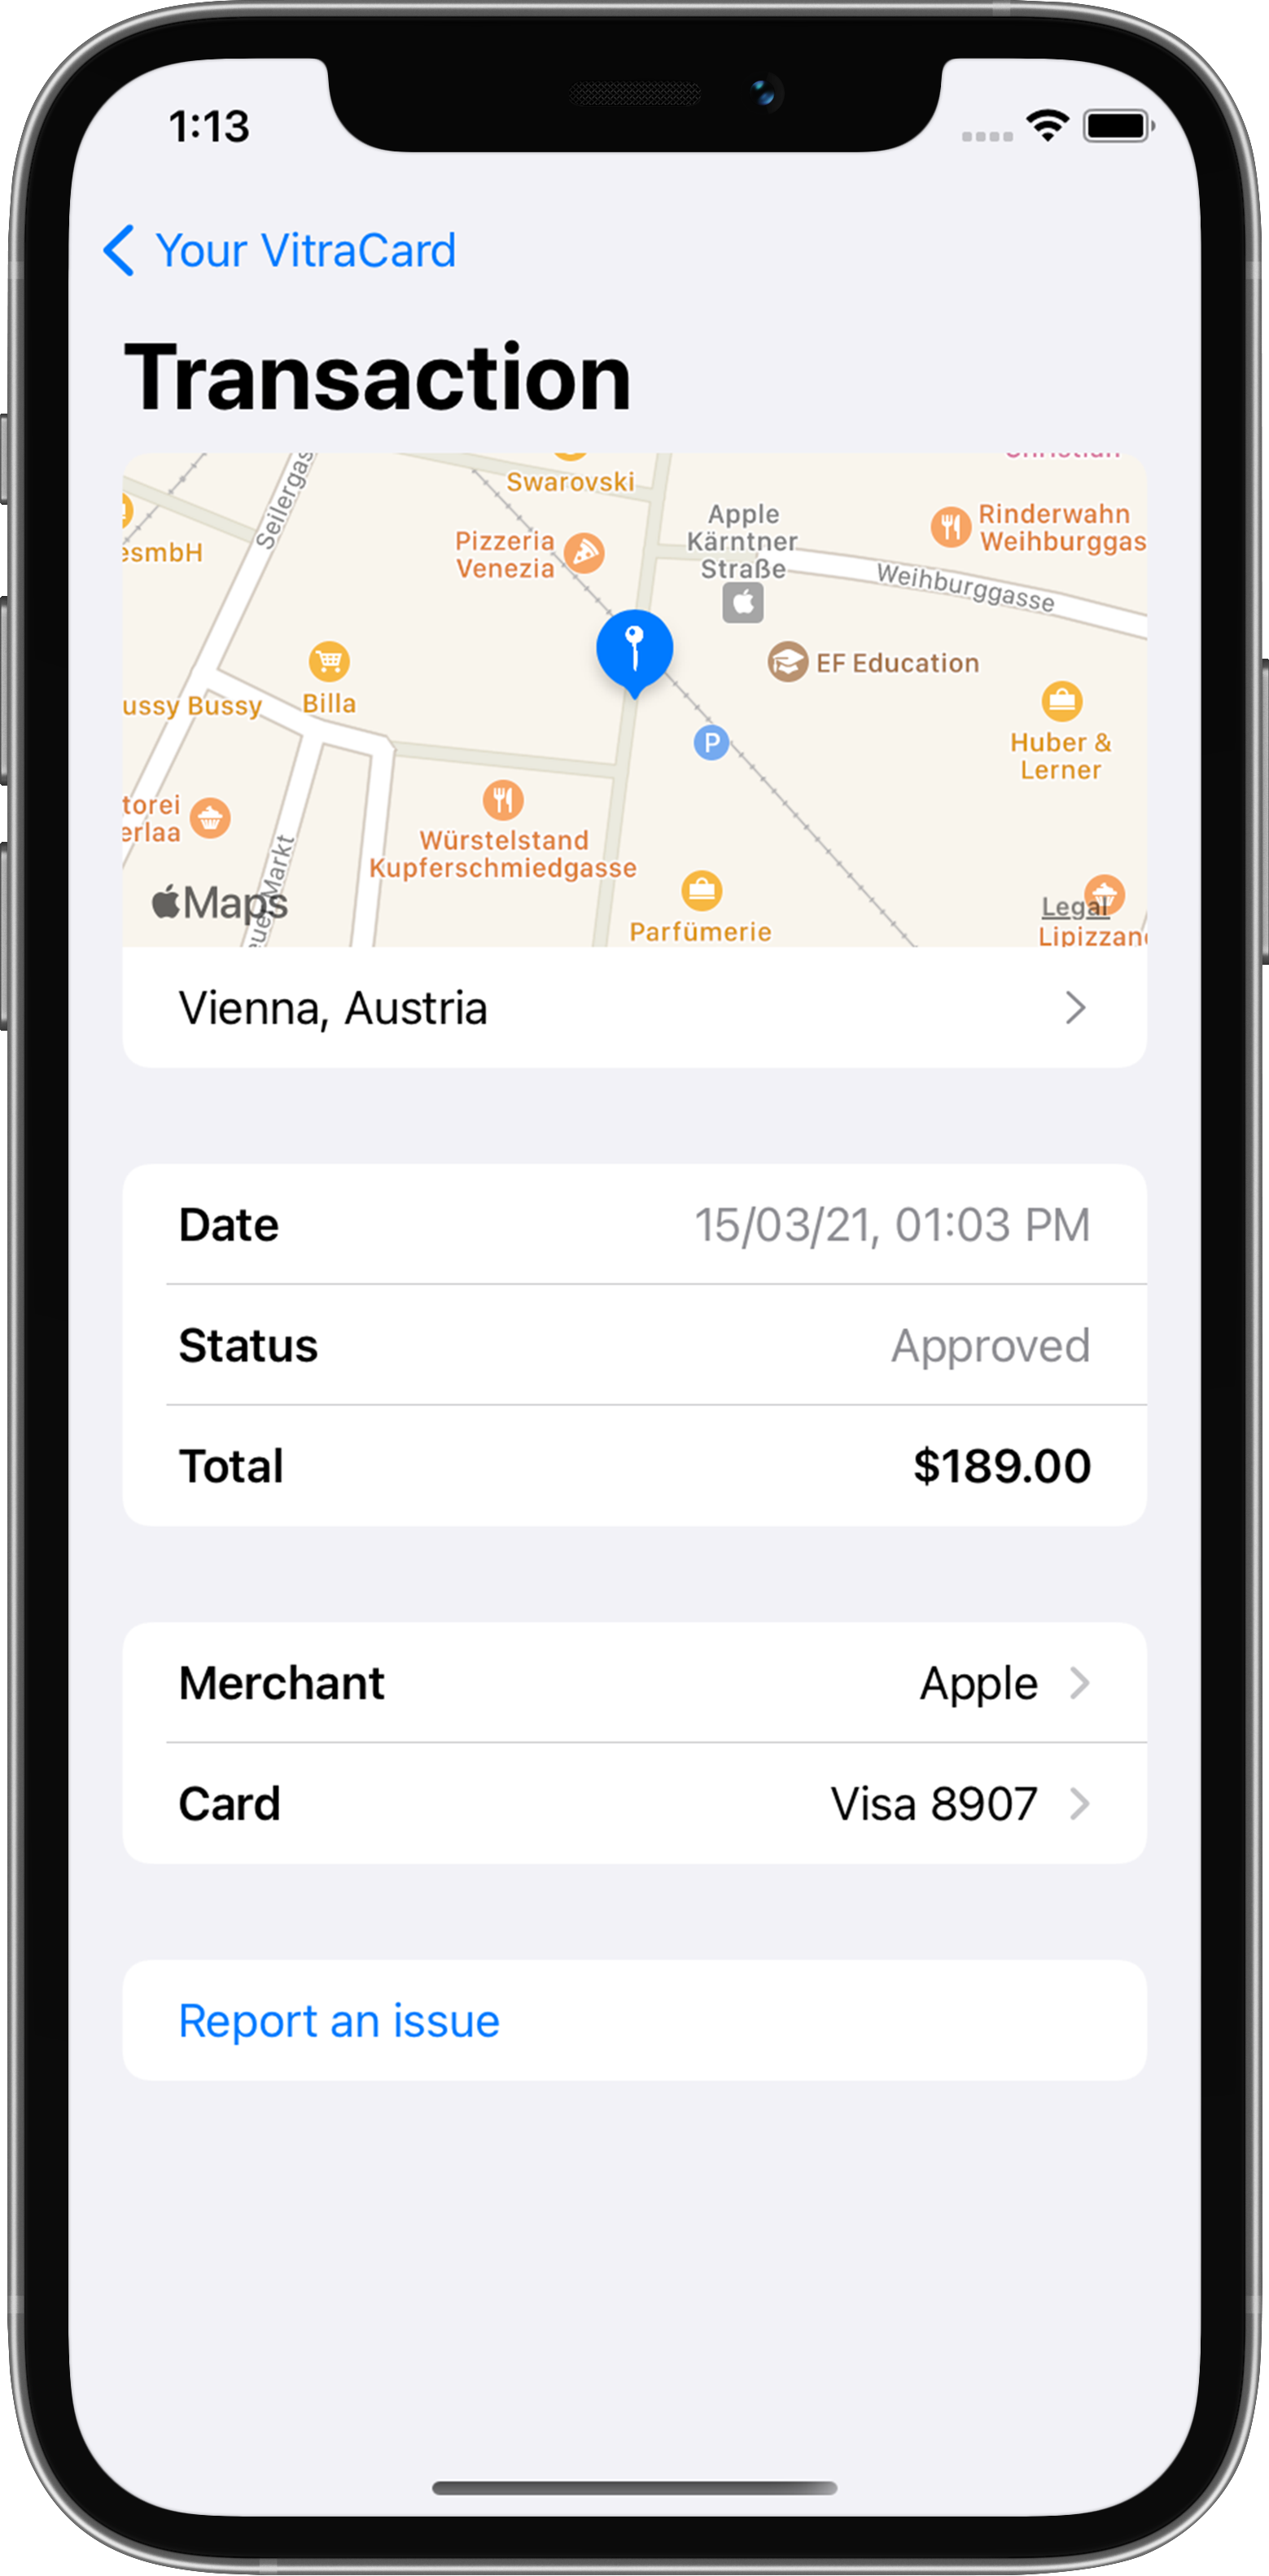 Details of a transaction inside the VitraCash app showing location, date, amount and more